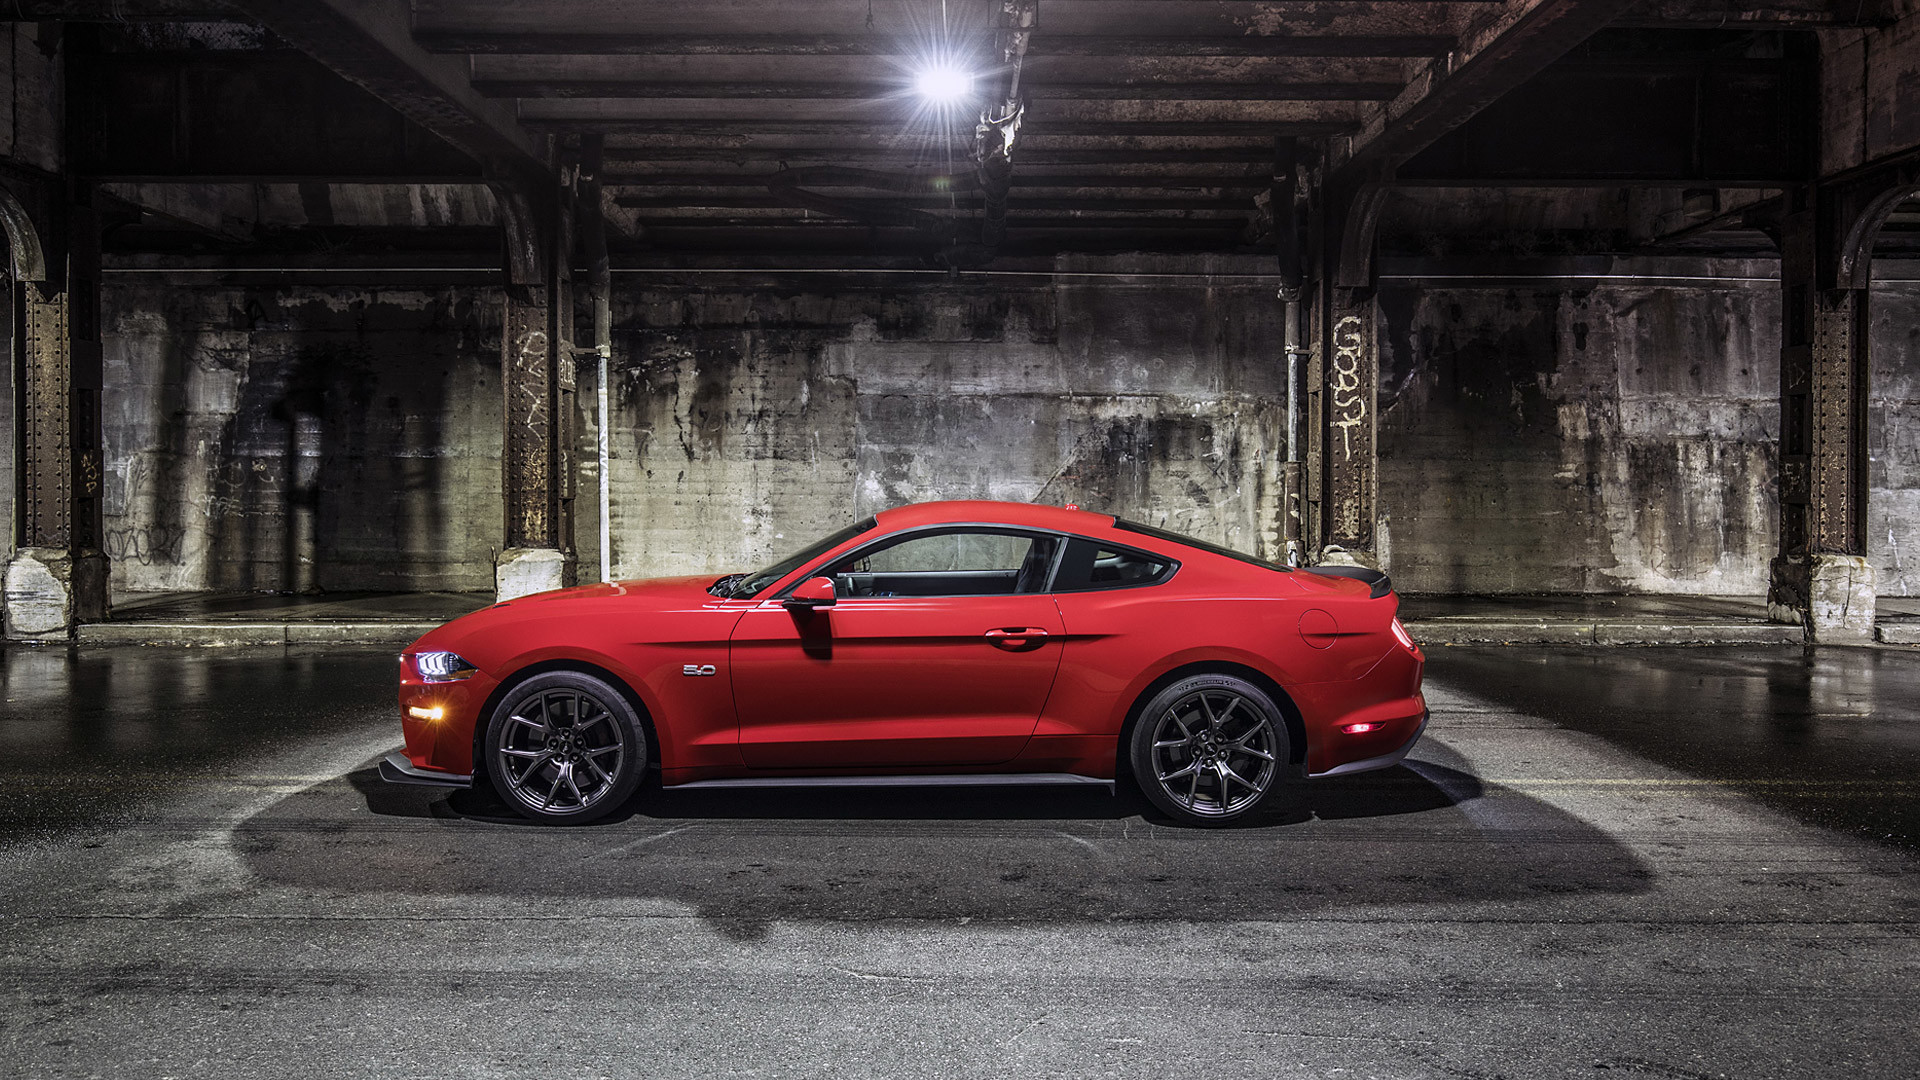 1920x1080 Vehicles - Ford Mustang GT Muscle Car Red Car Wallpaper